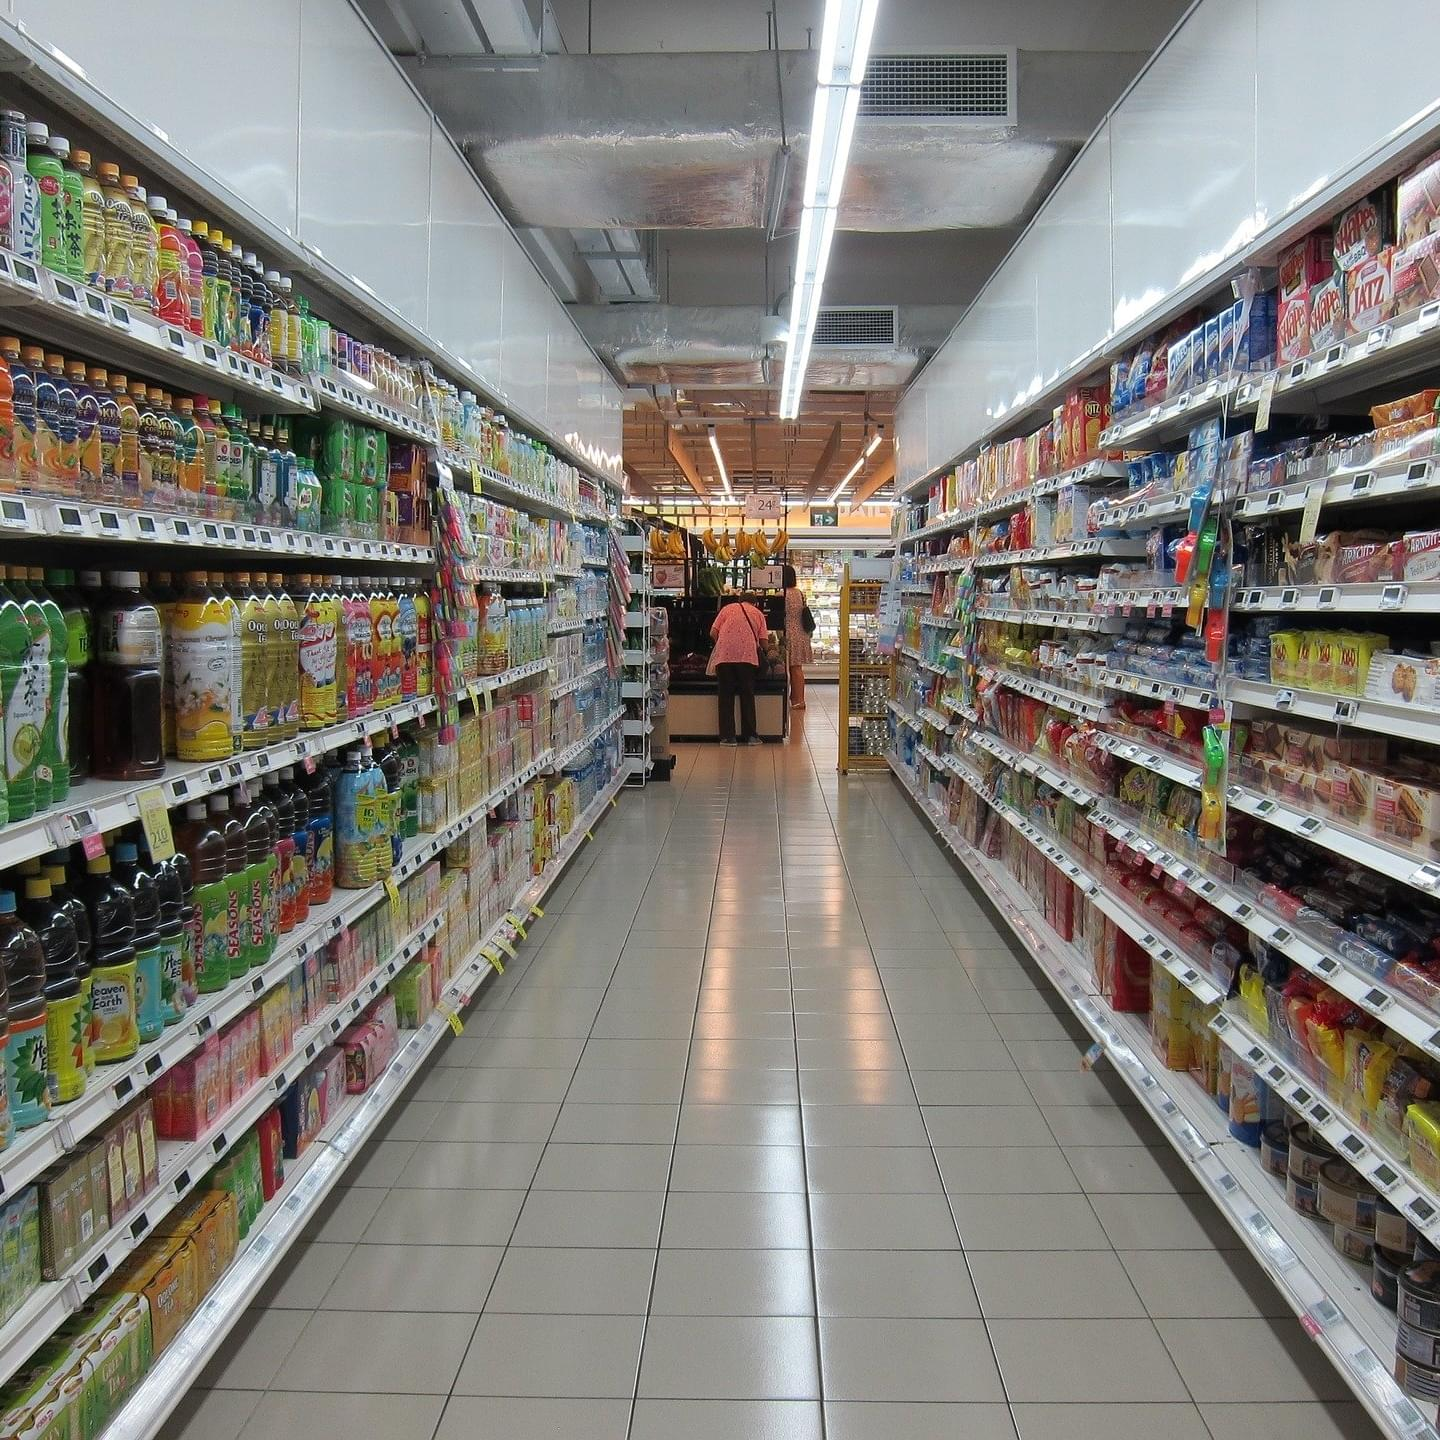 Stay Home For the Next 2 Weeks – Skip groceries and the pharmacy